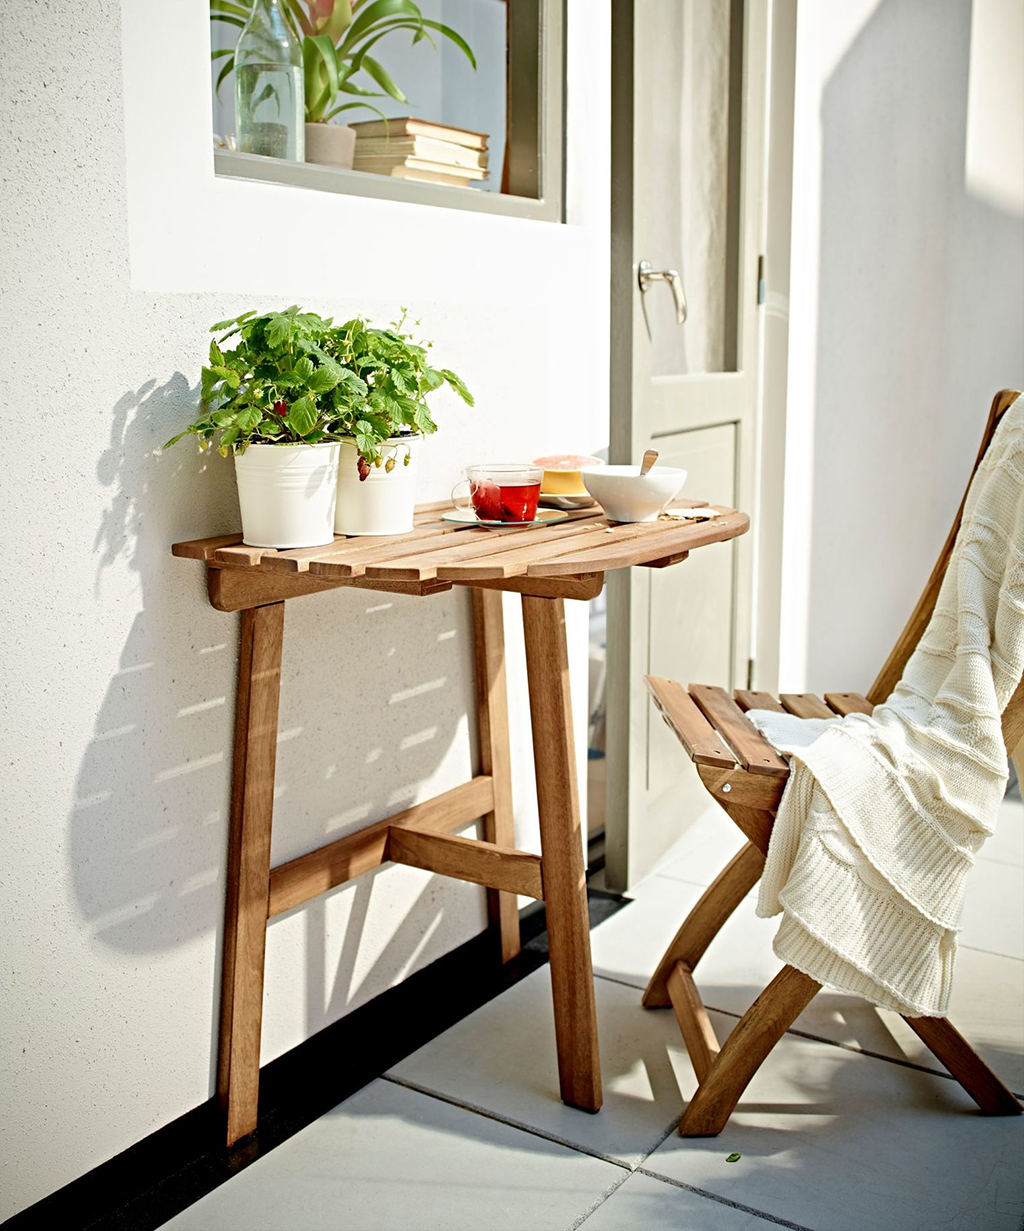 7 Outdoor Bistro Sets For Your Teeny Tiny Balcony Patio